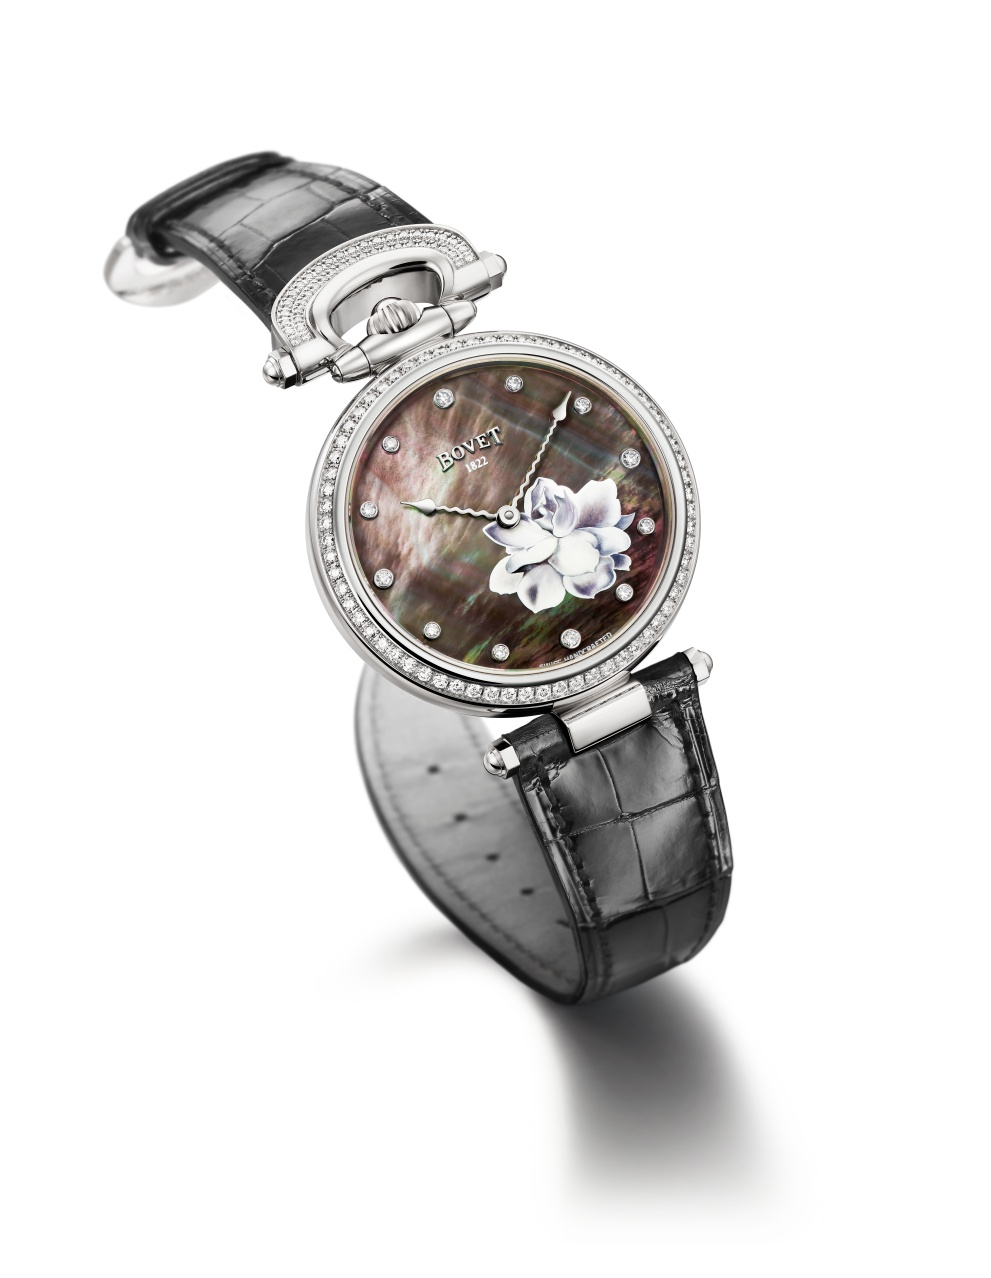 Bovet Watch   Chateau De Motiers   Ref. Nr. HMS061-SD12-L    Call 312-944-3100  | For Availability